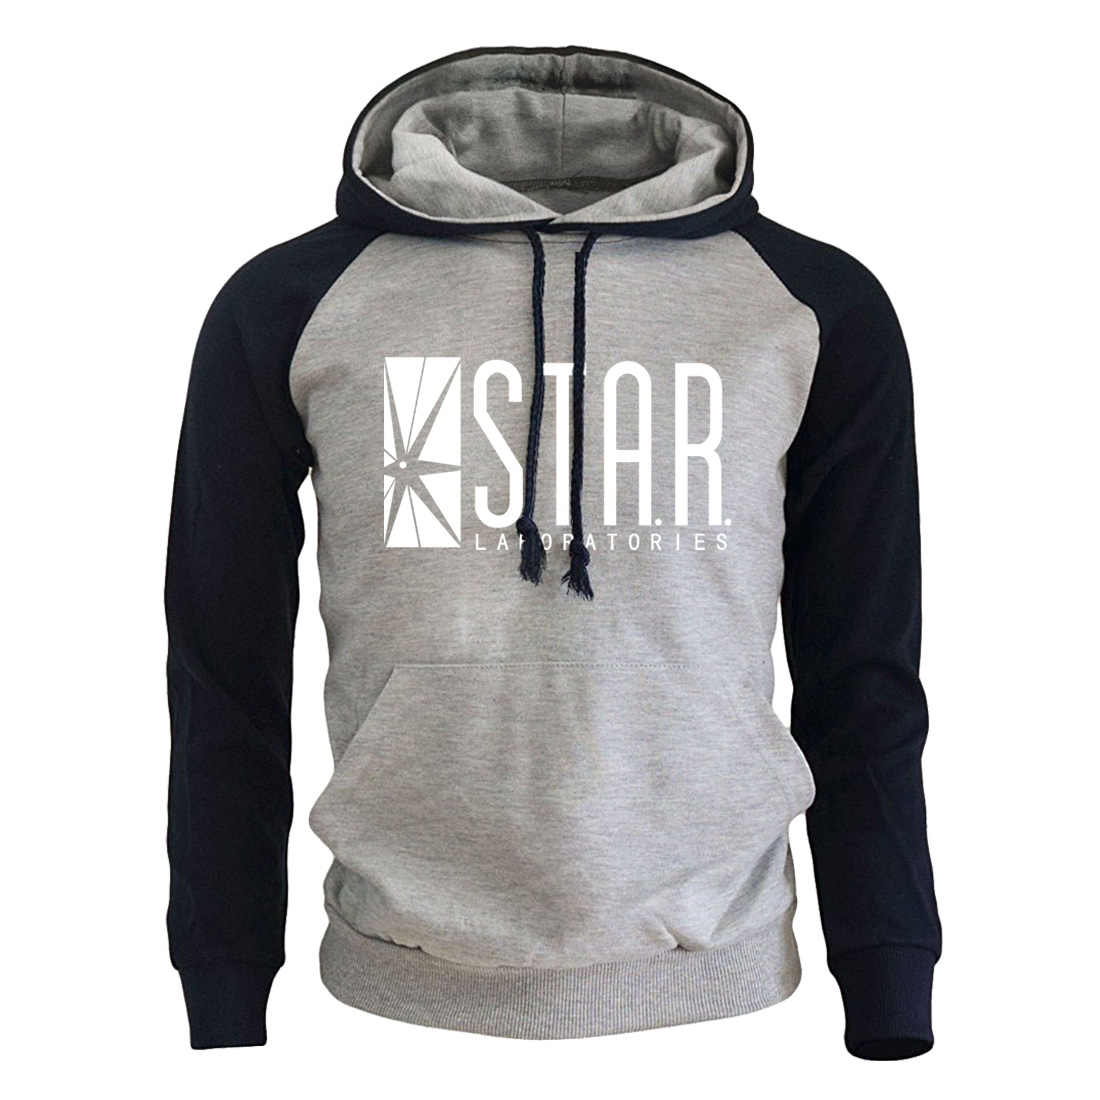 Ster Labs Superman Serie Heren Hooded Hoodies Winter Herfst Mannelijke Sweatshirt Jumper De Flash Gotham City 2019 Hoody Streetwear